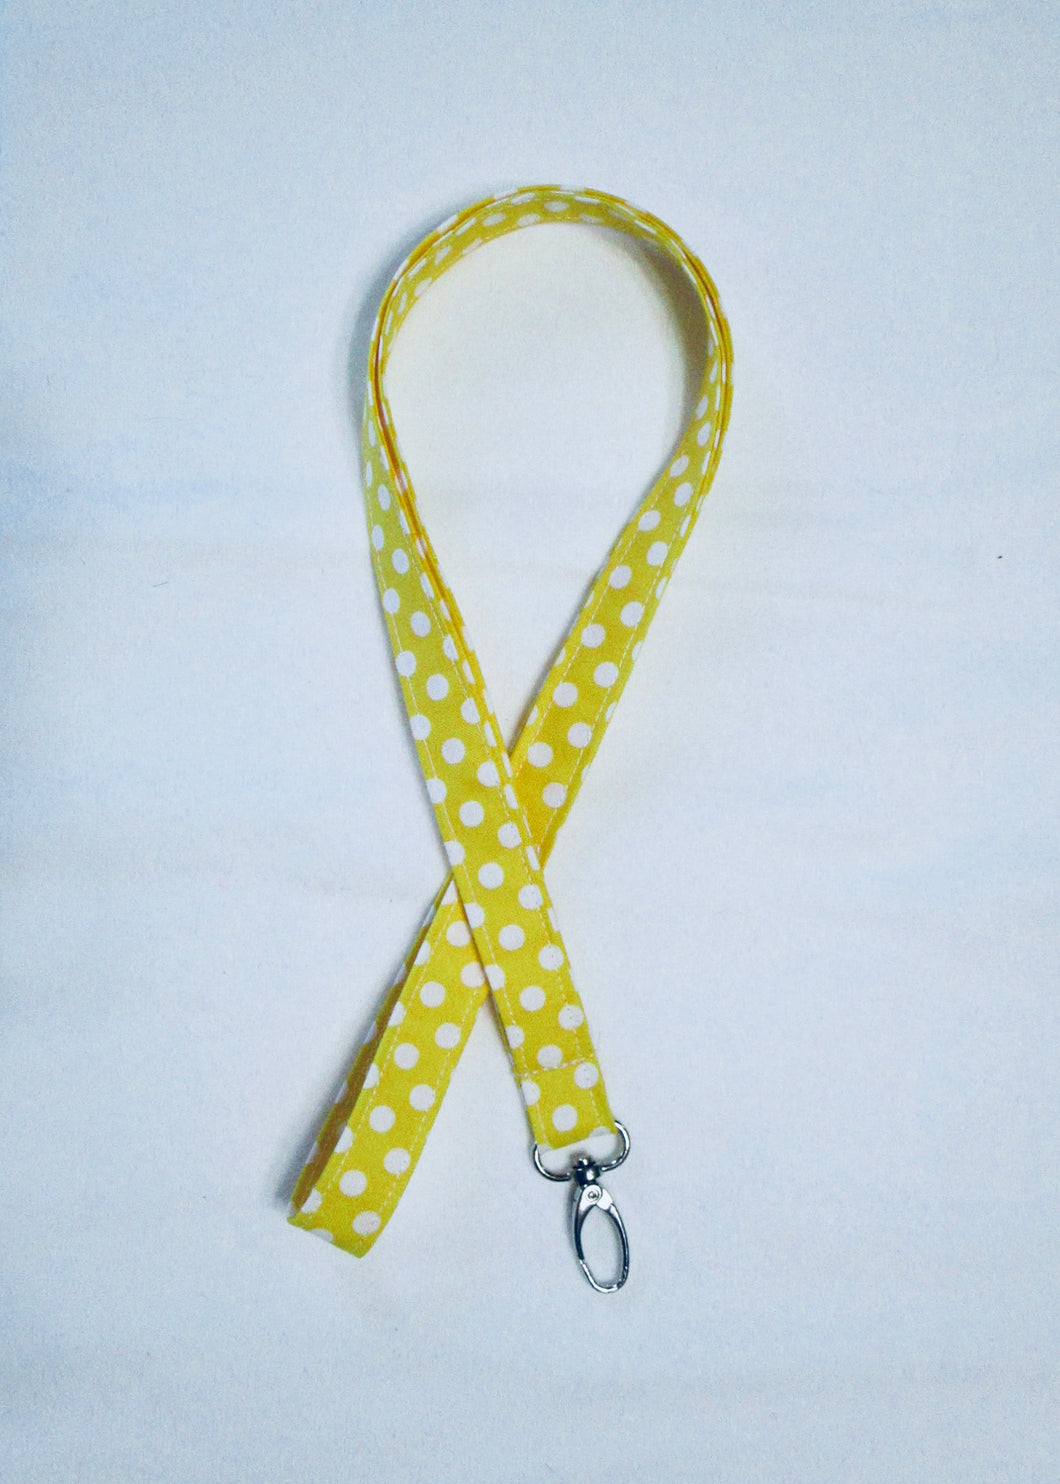 Polka Dot Seamless Cotton Lanyard - Choose from 4 Bright Color Options